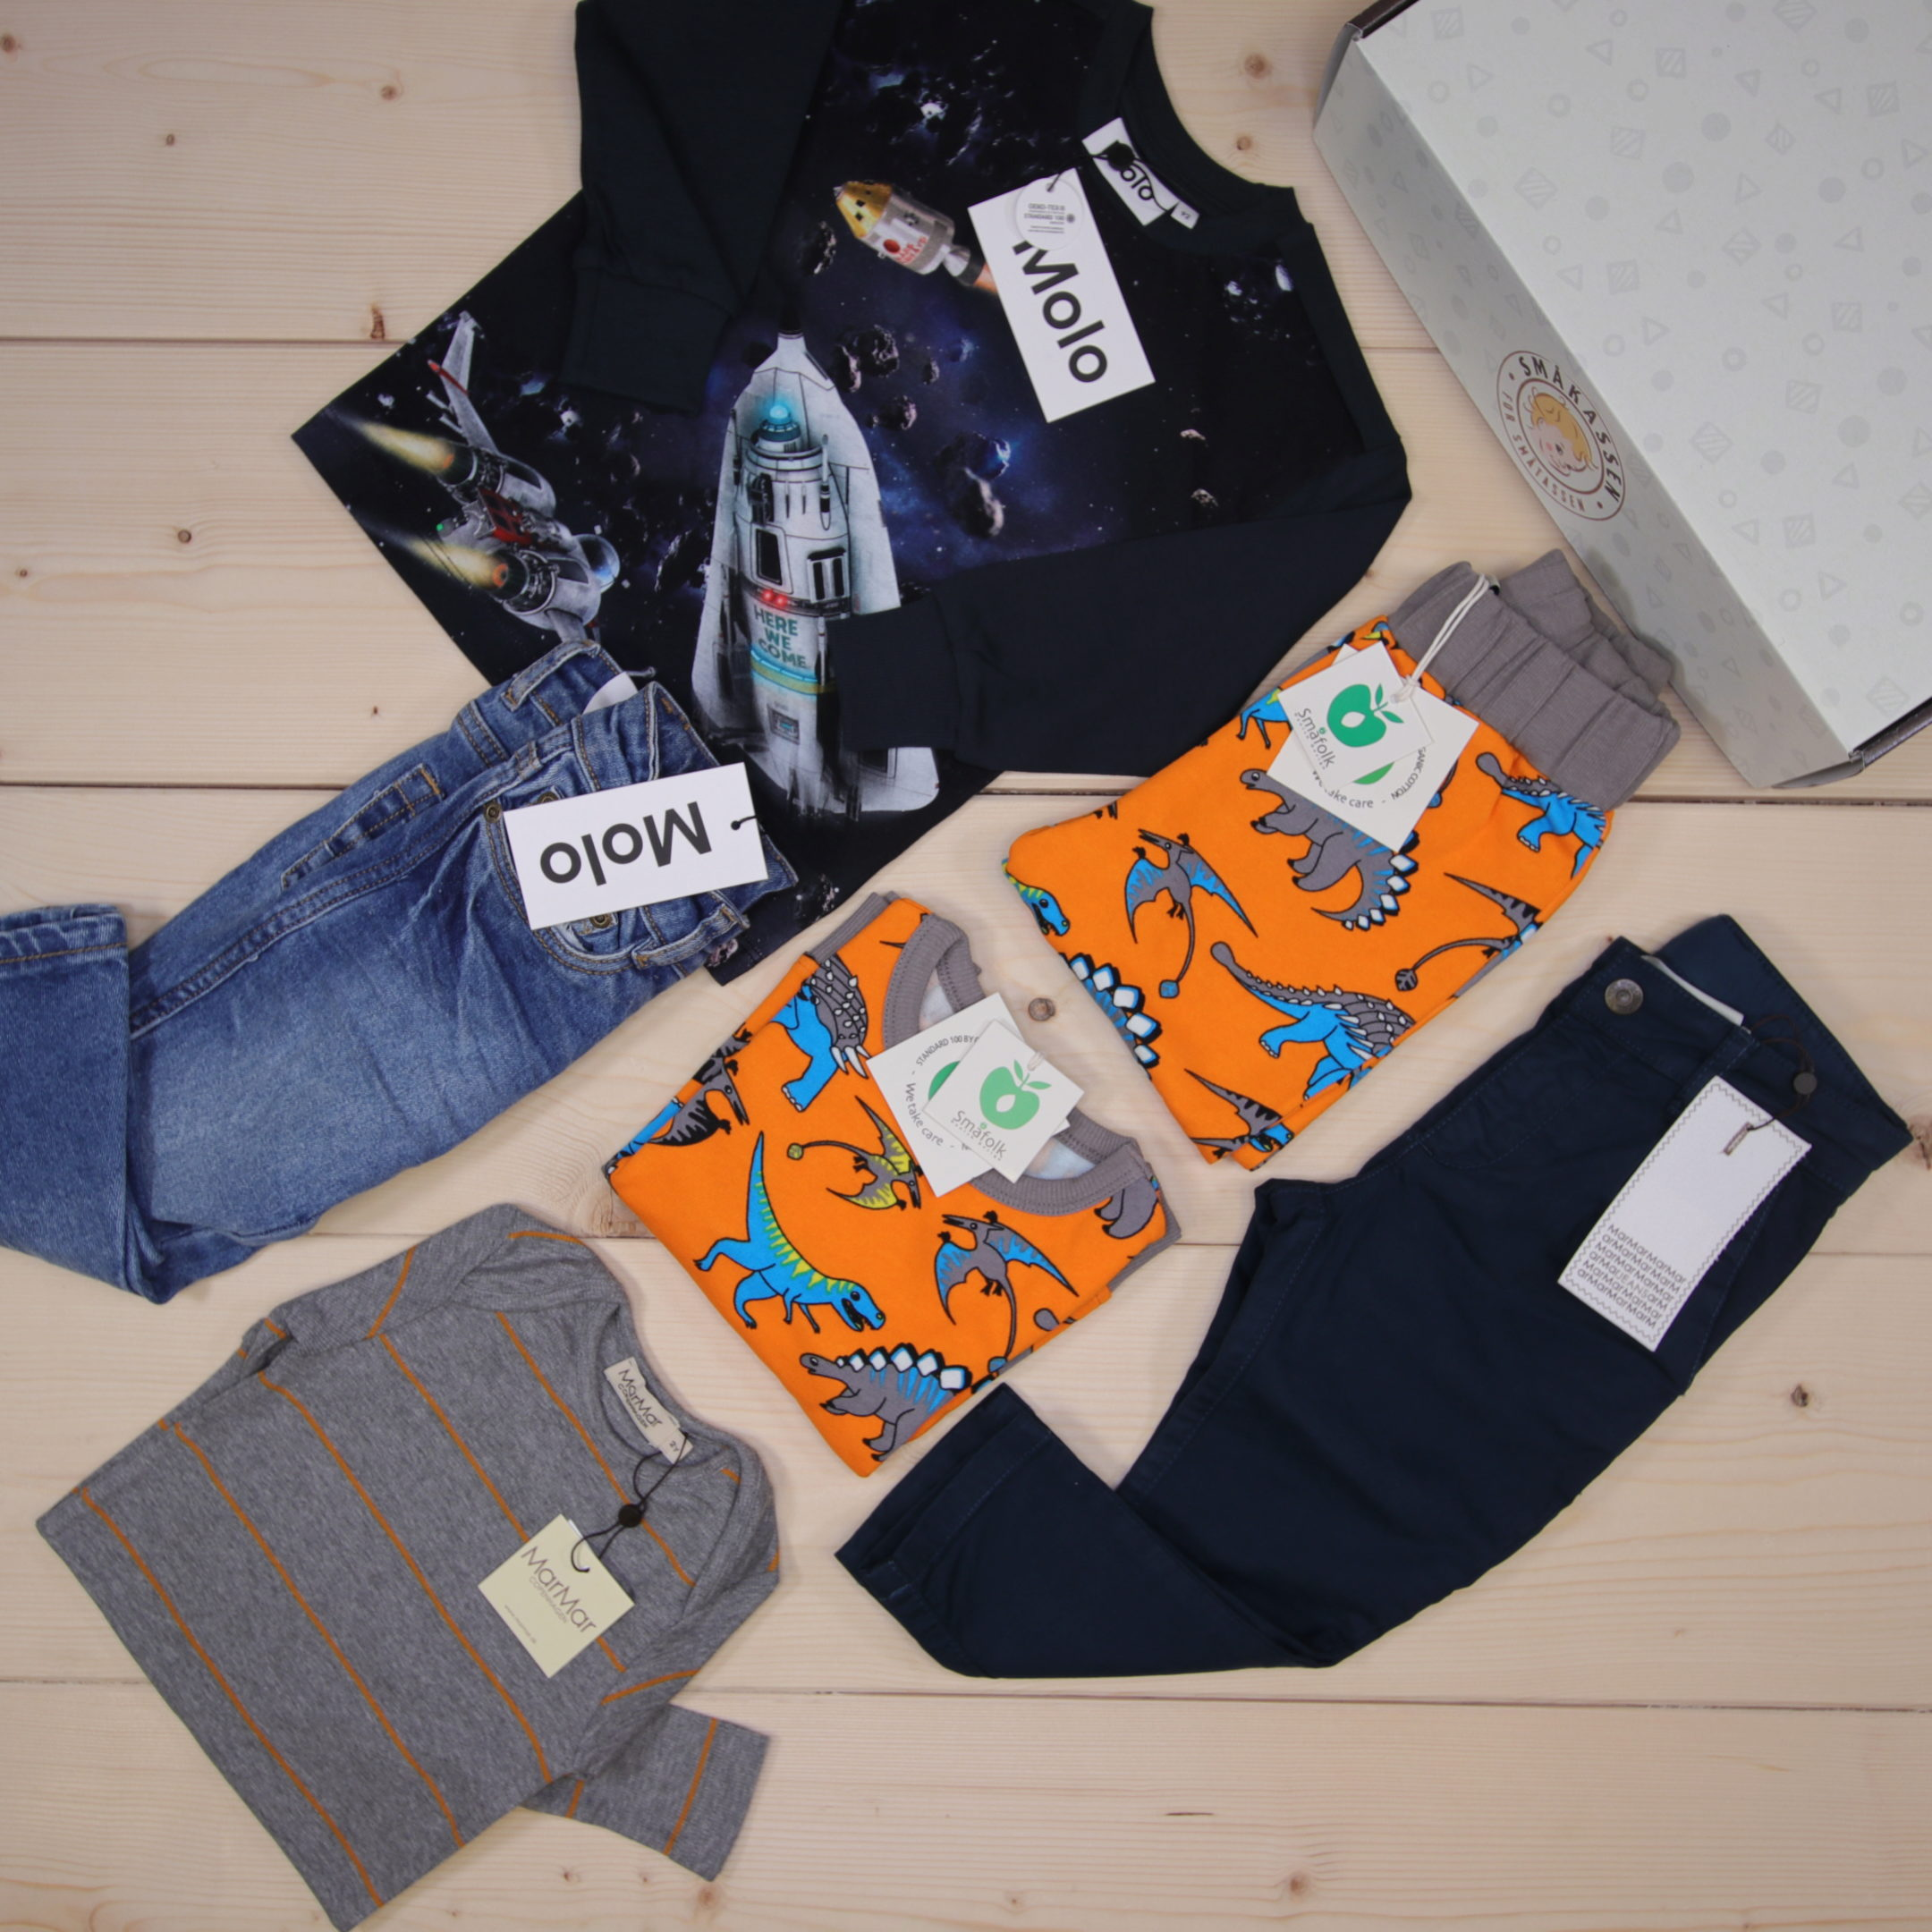 This is a 166 GBP* Småkassen that we prepared for a boy  in the styles cute, cool, and colorful in size 92